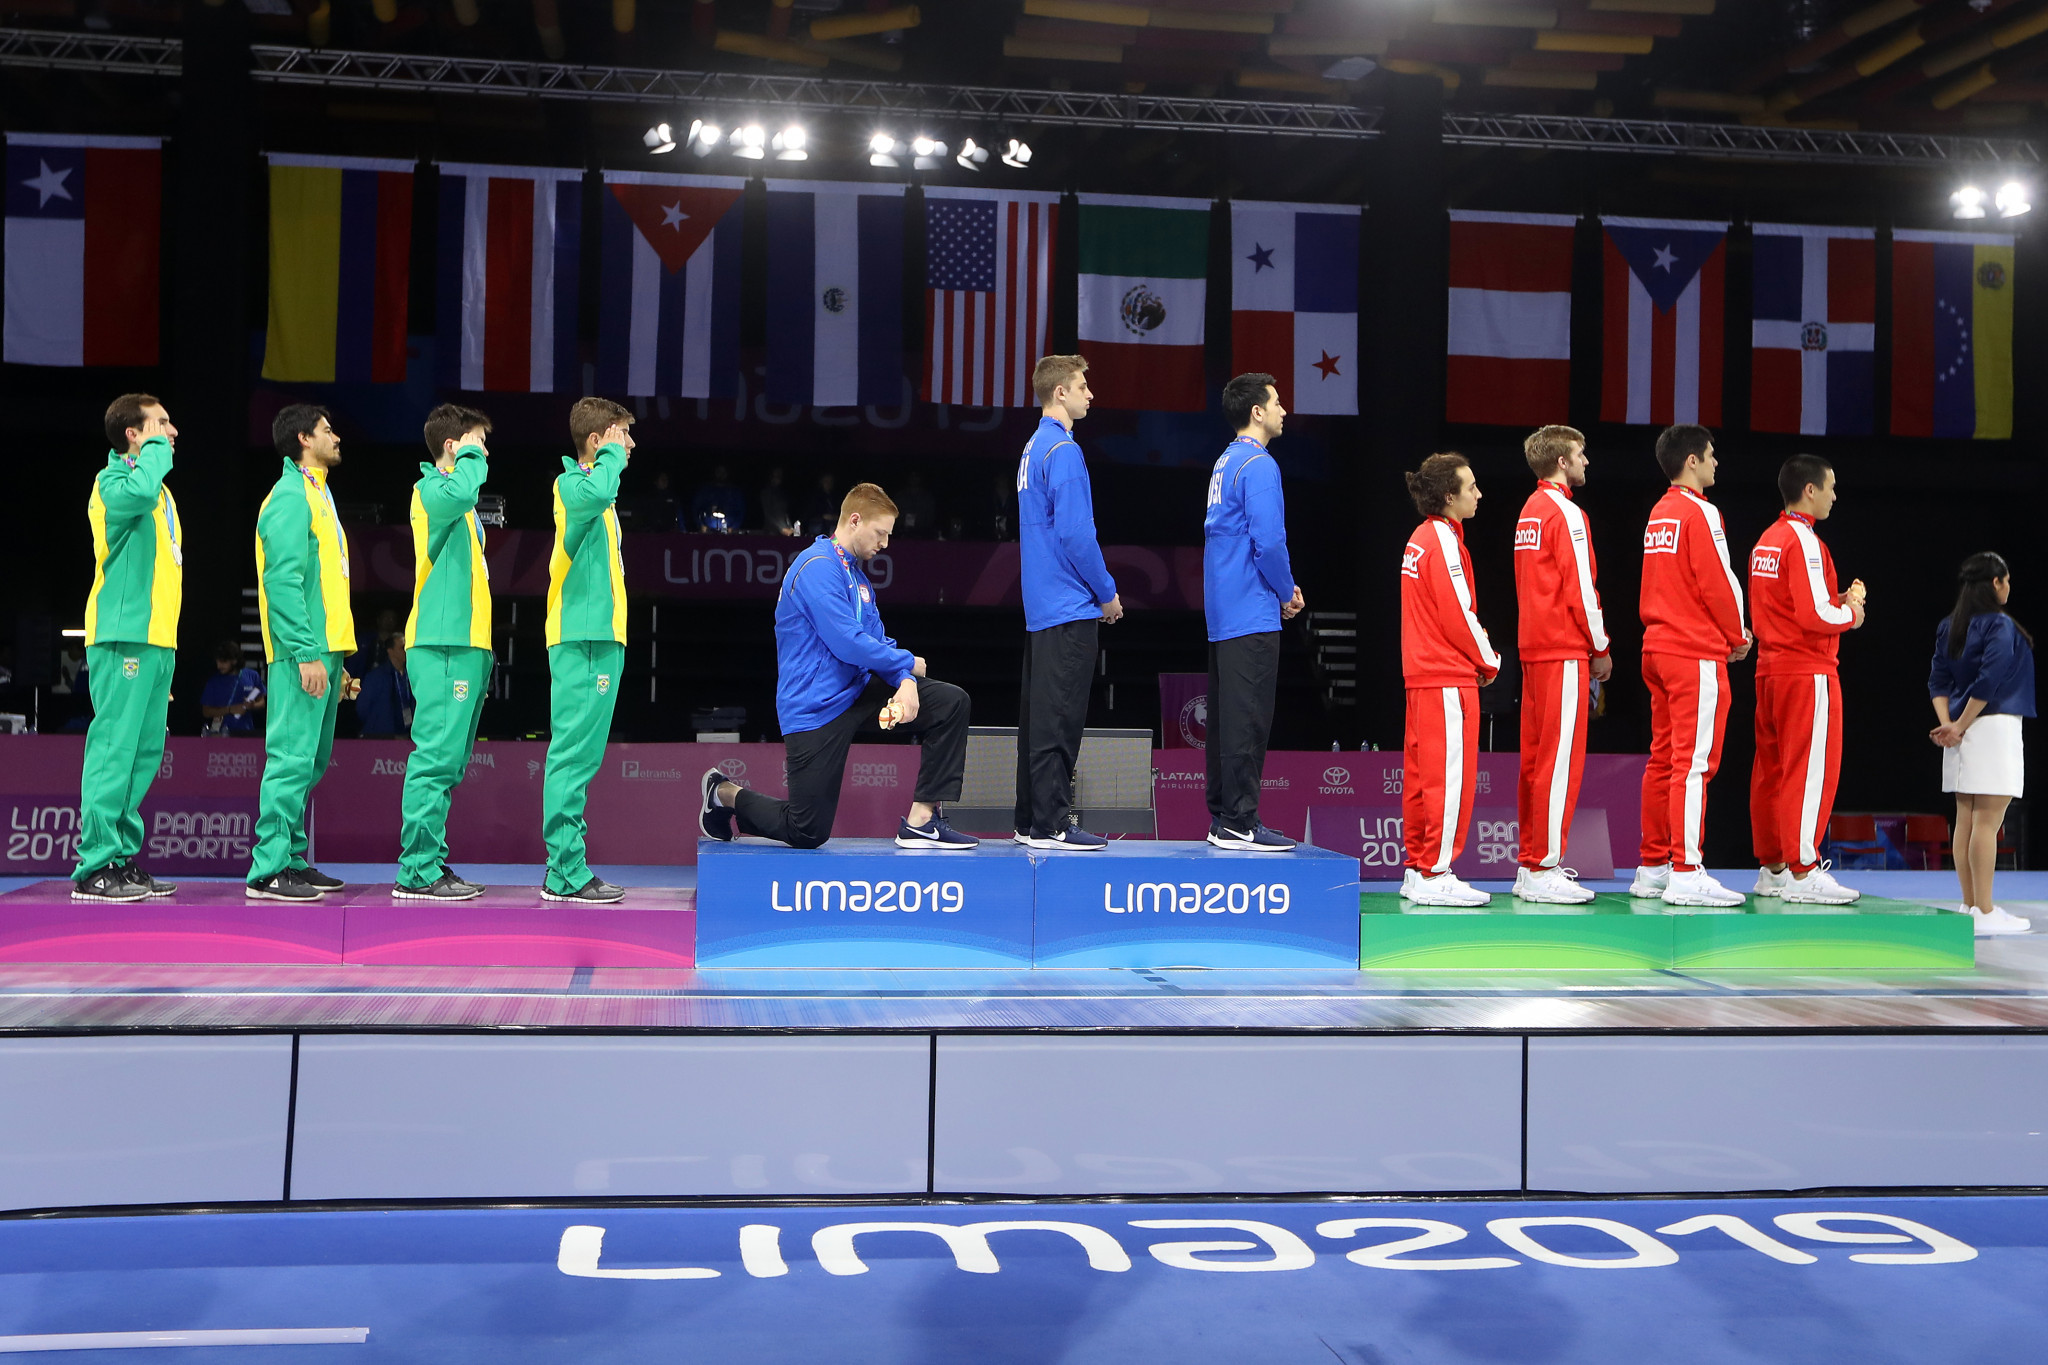 American fencer Race Imboden staged a podium protest at the 2019 Pan American Games in Lima ©Getty Images